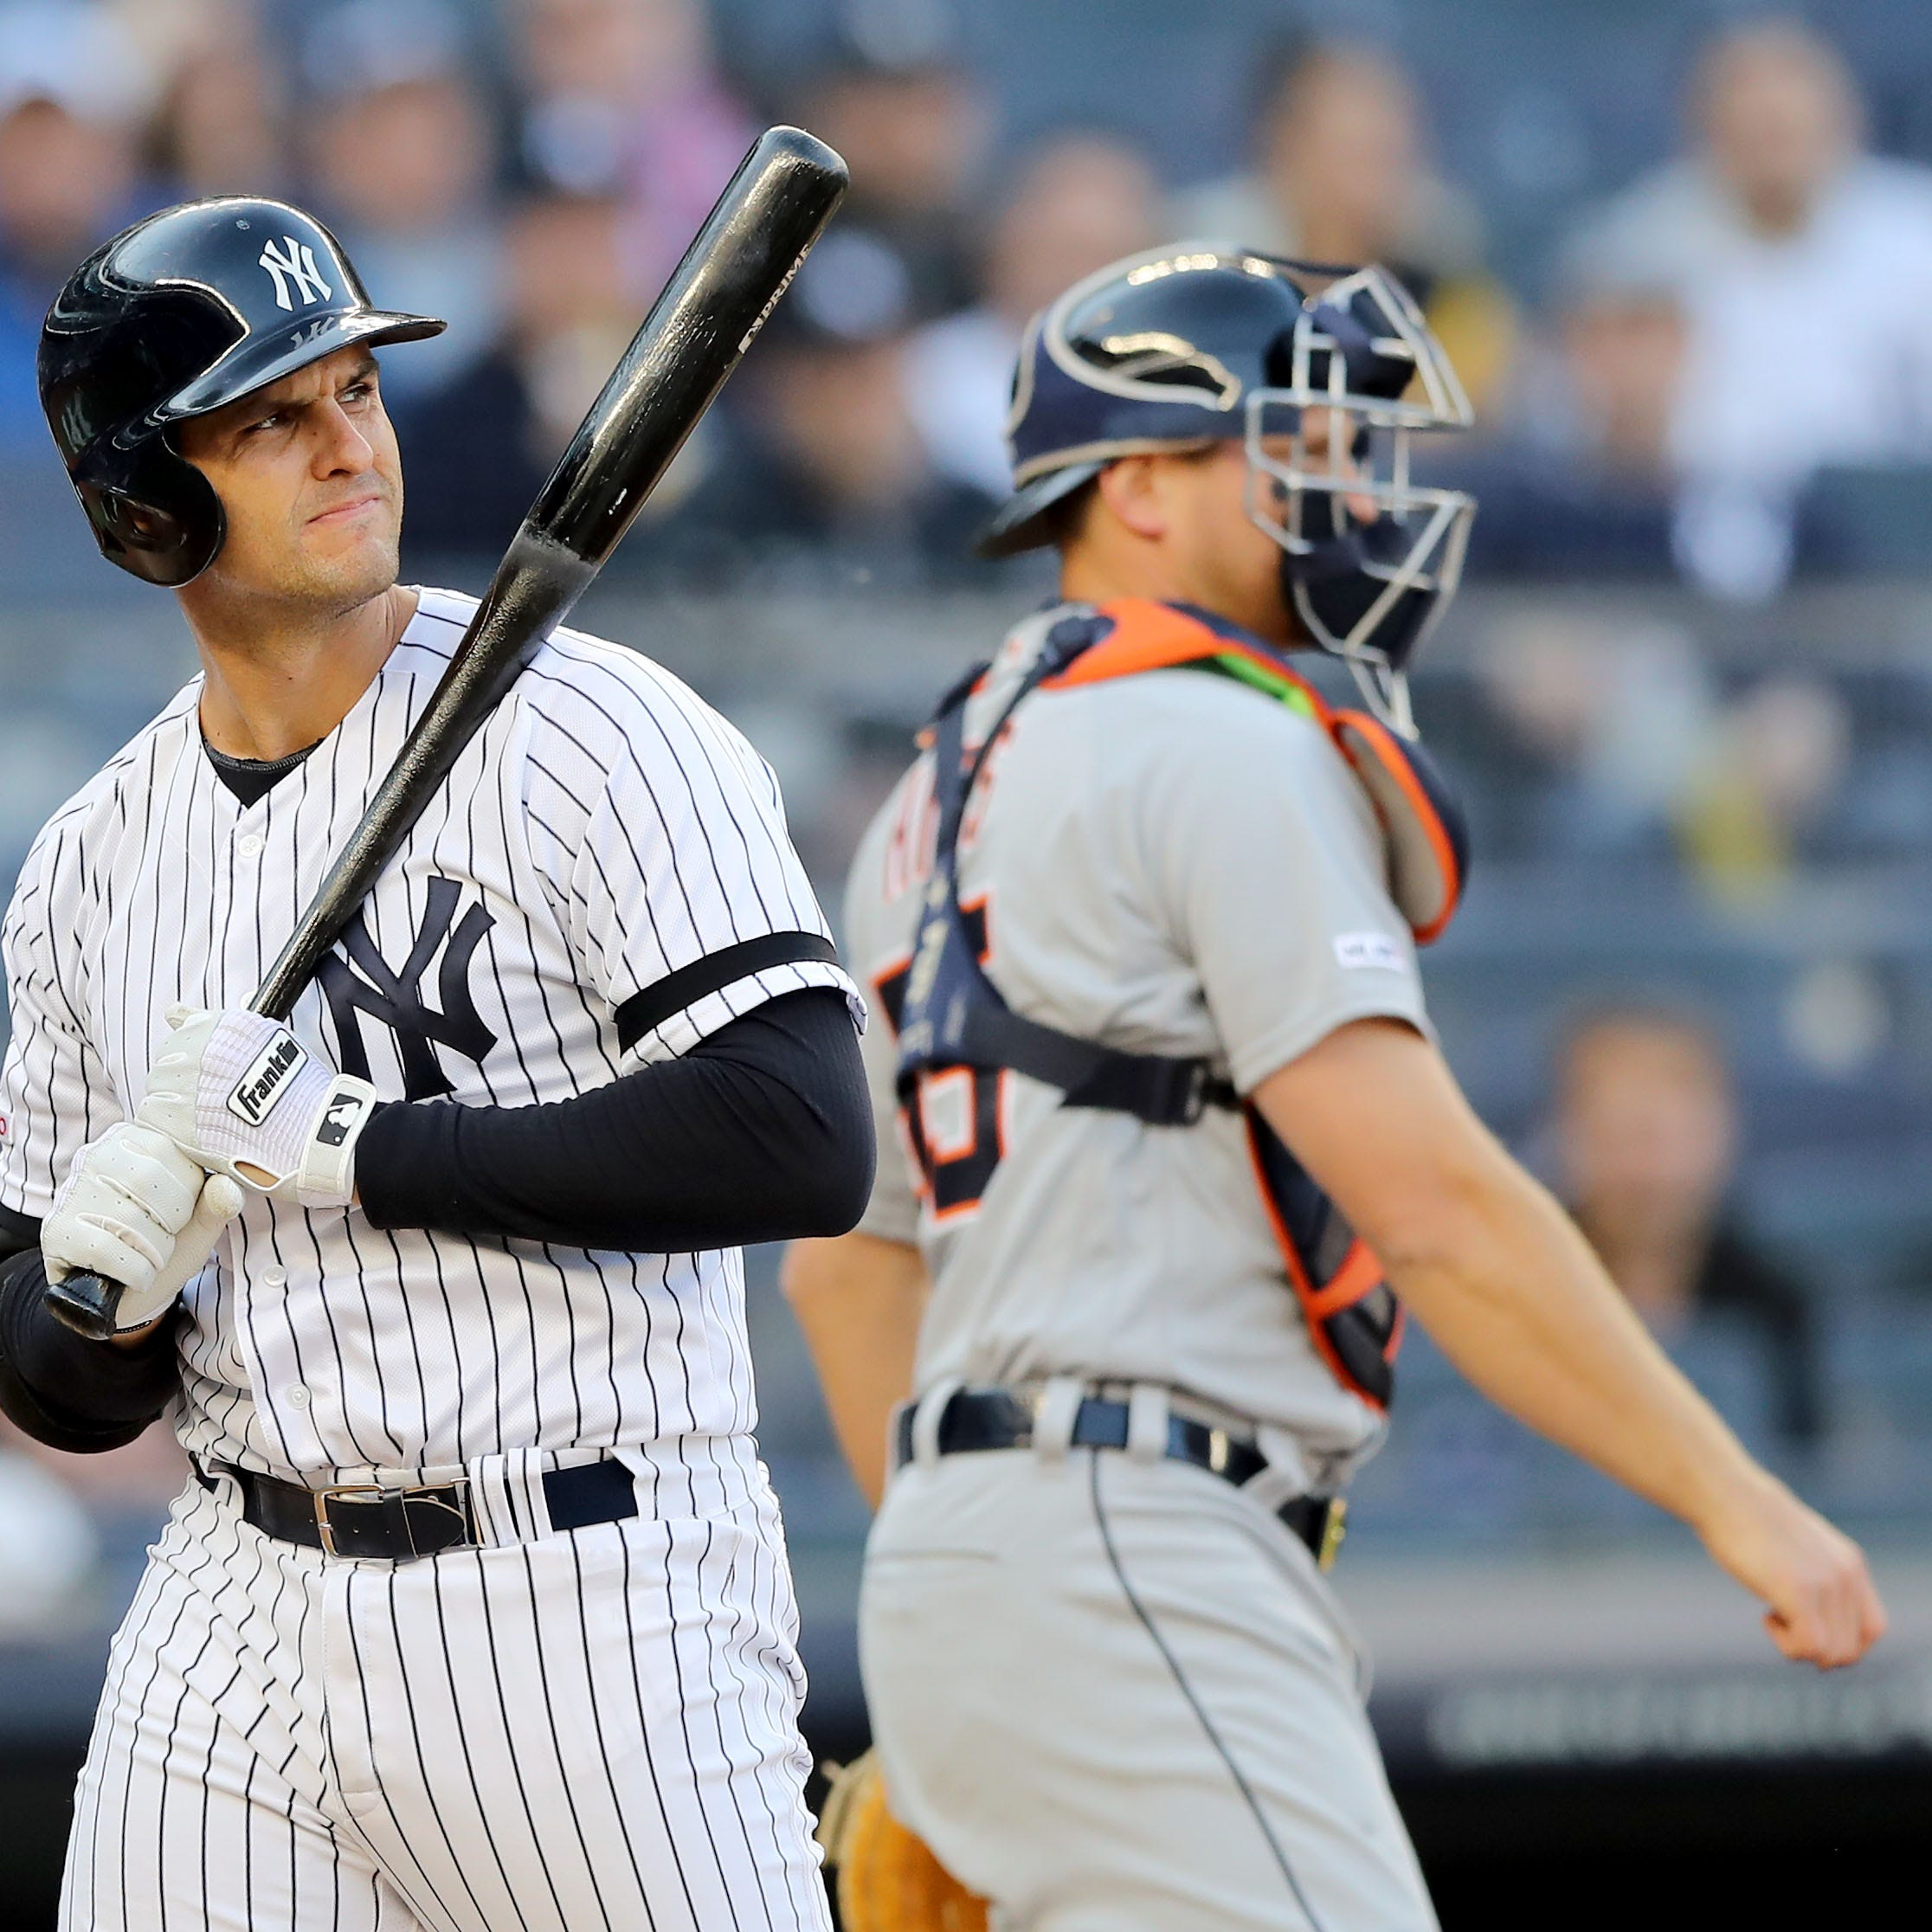 Greg Bird's latest injury casts doubt on his Yankees' future